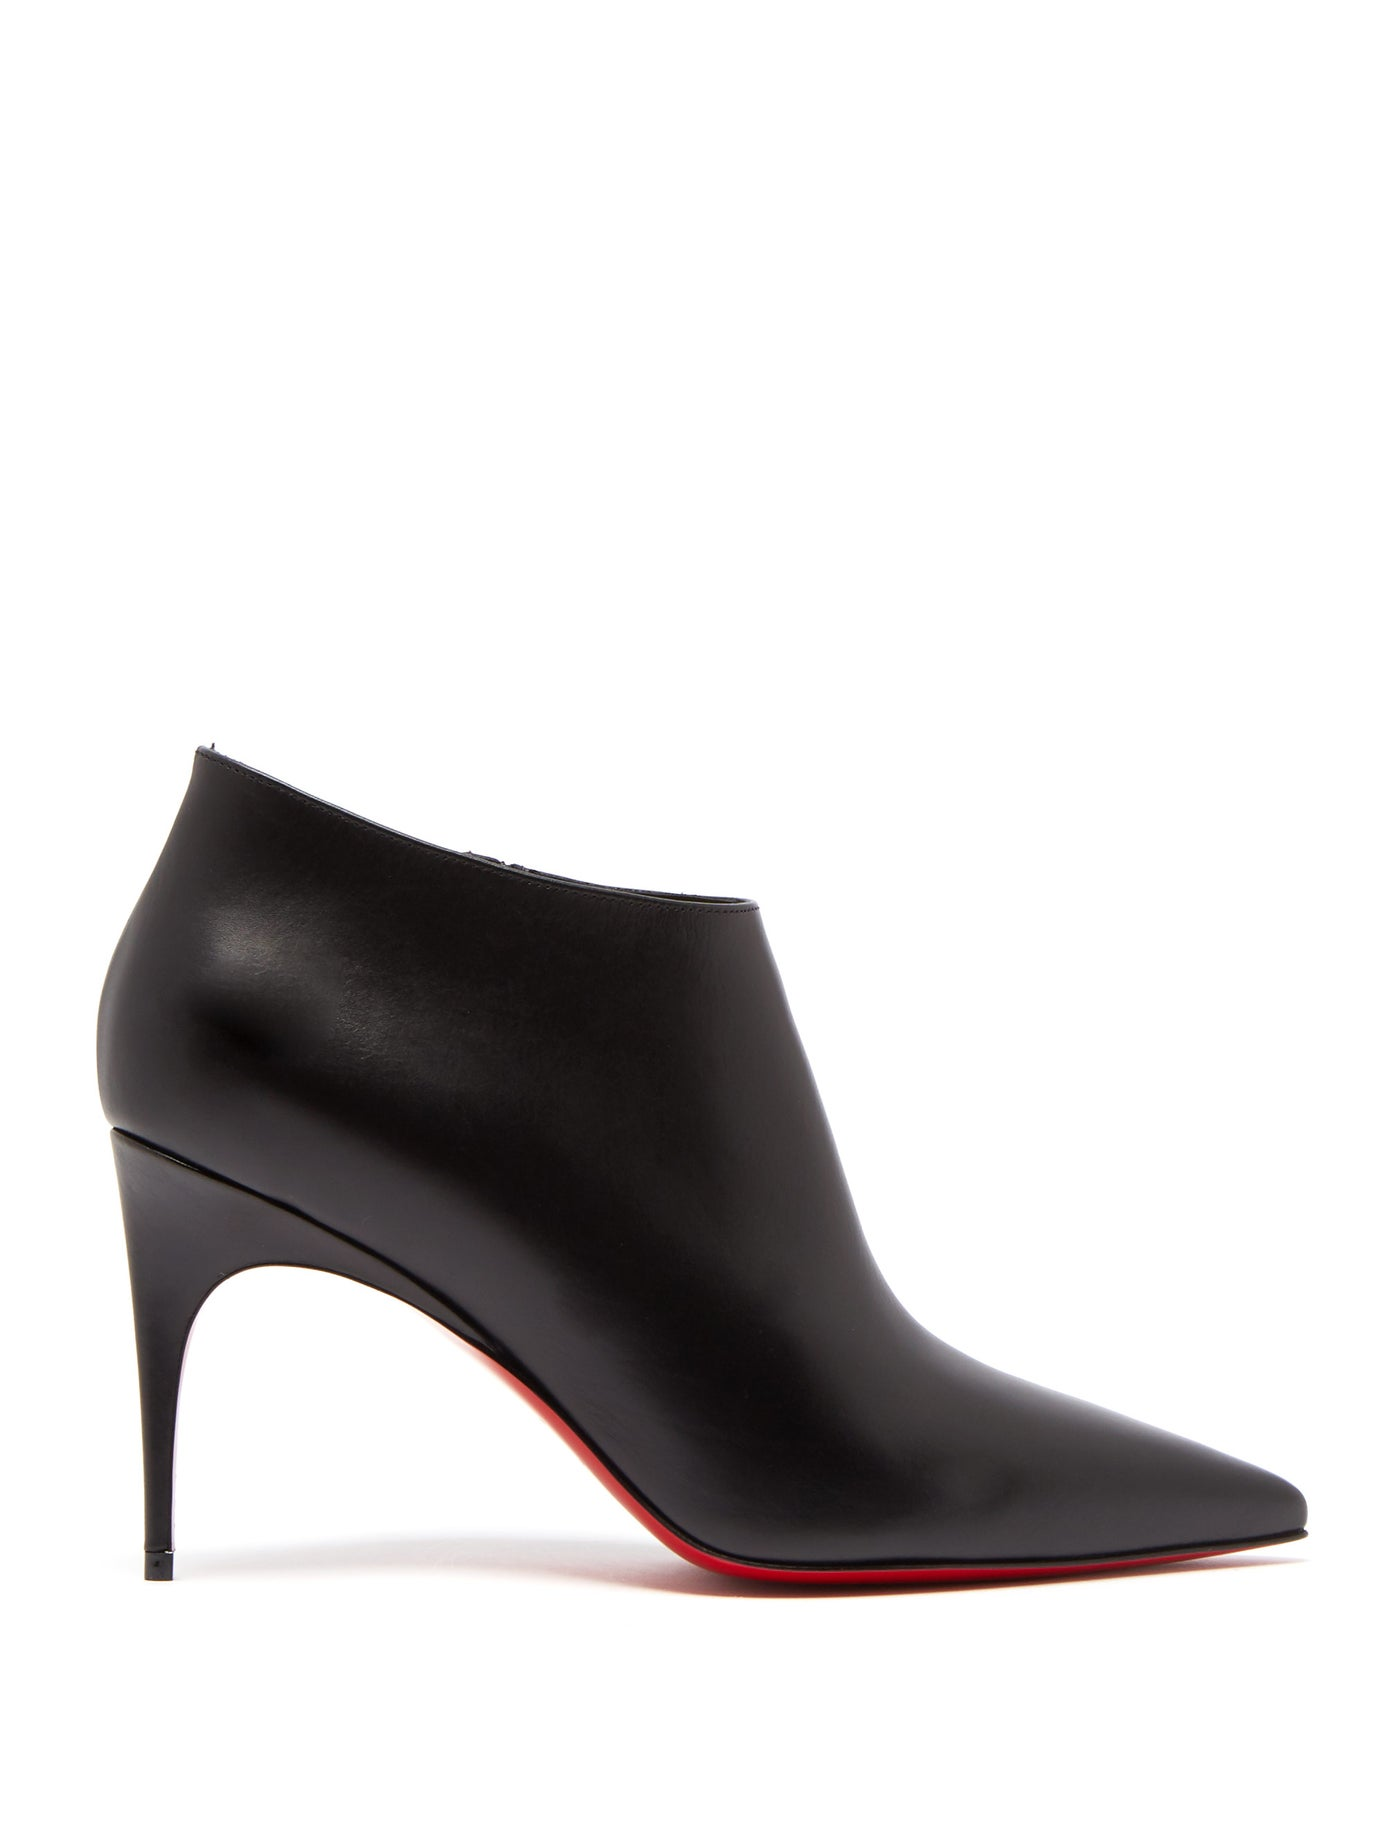 la moitié 10ecd 8b4f2 Christian Louboutin - Gorgona 85 Leather Ankle Boots